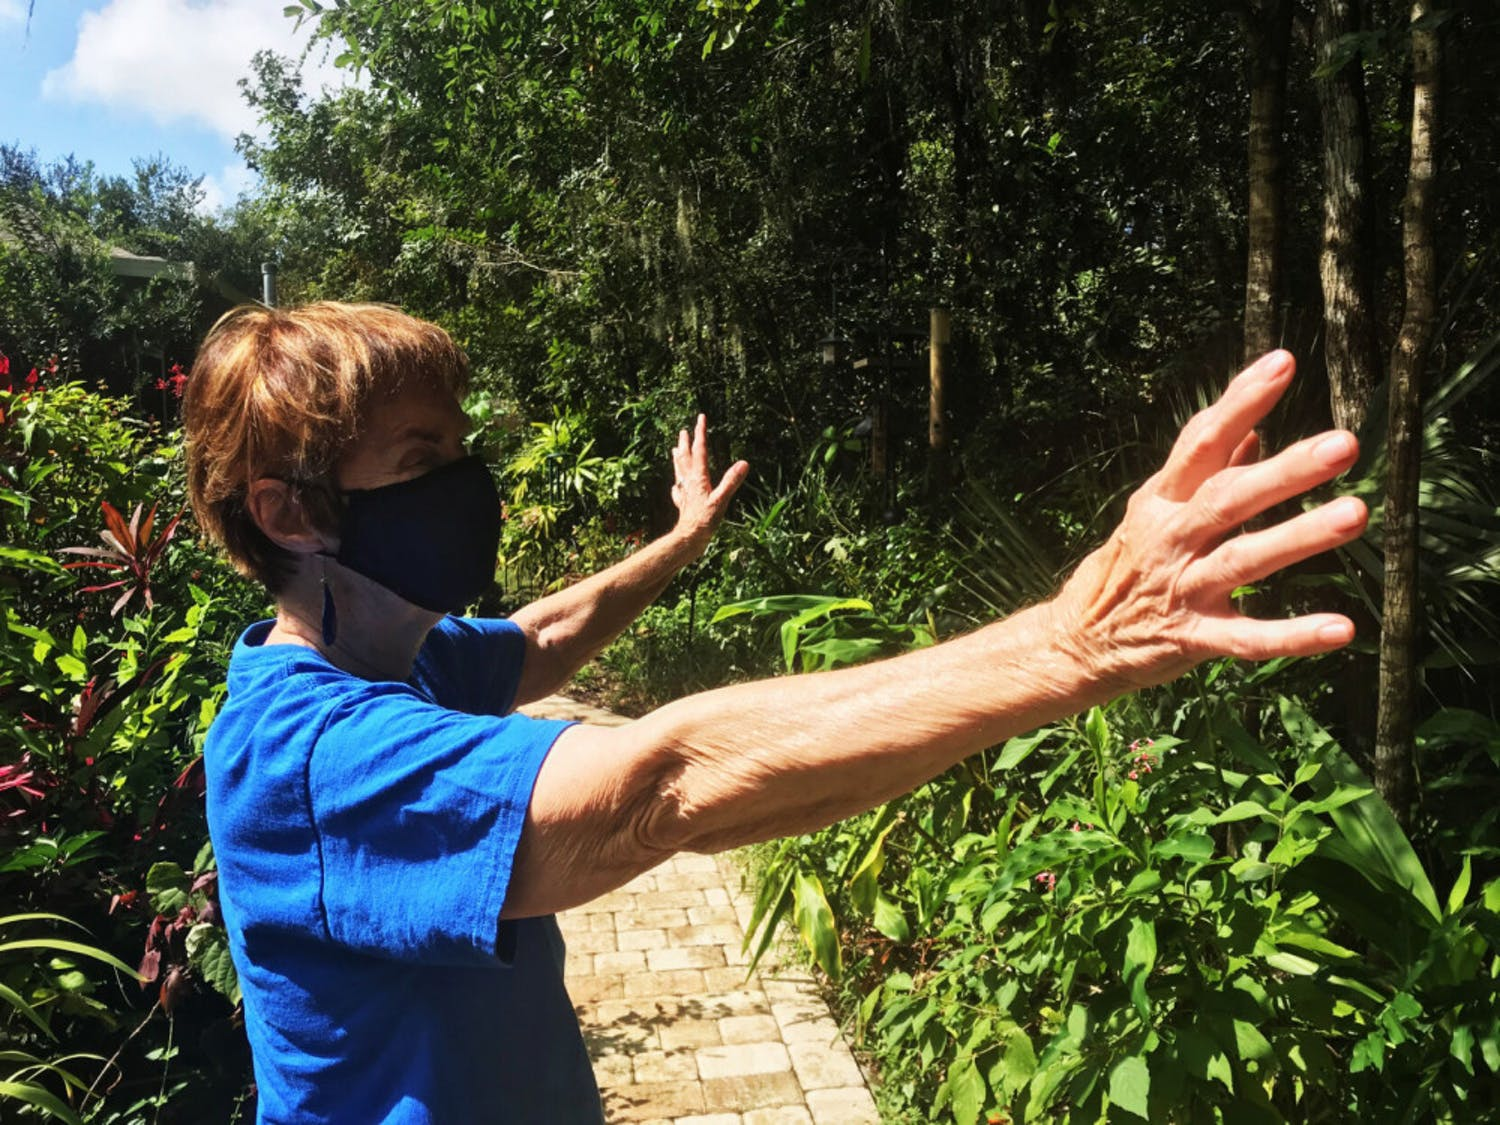 Patsy Nelms, an 83-year-old resident of Oak Hammock, is seen on Sunday, Oct. 11, 2020.Patsy and Warren opted to live in a house surrounded by a lush garden where purple flowers dangle from trees and hummingbirds whiz about.